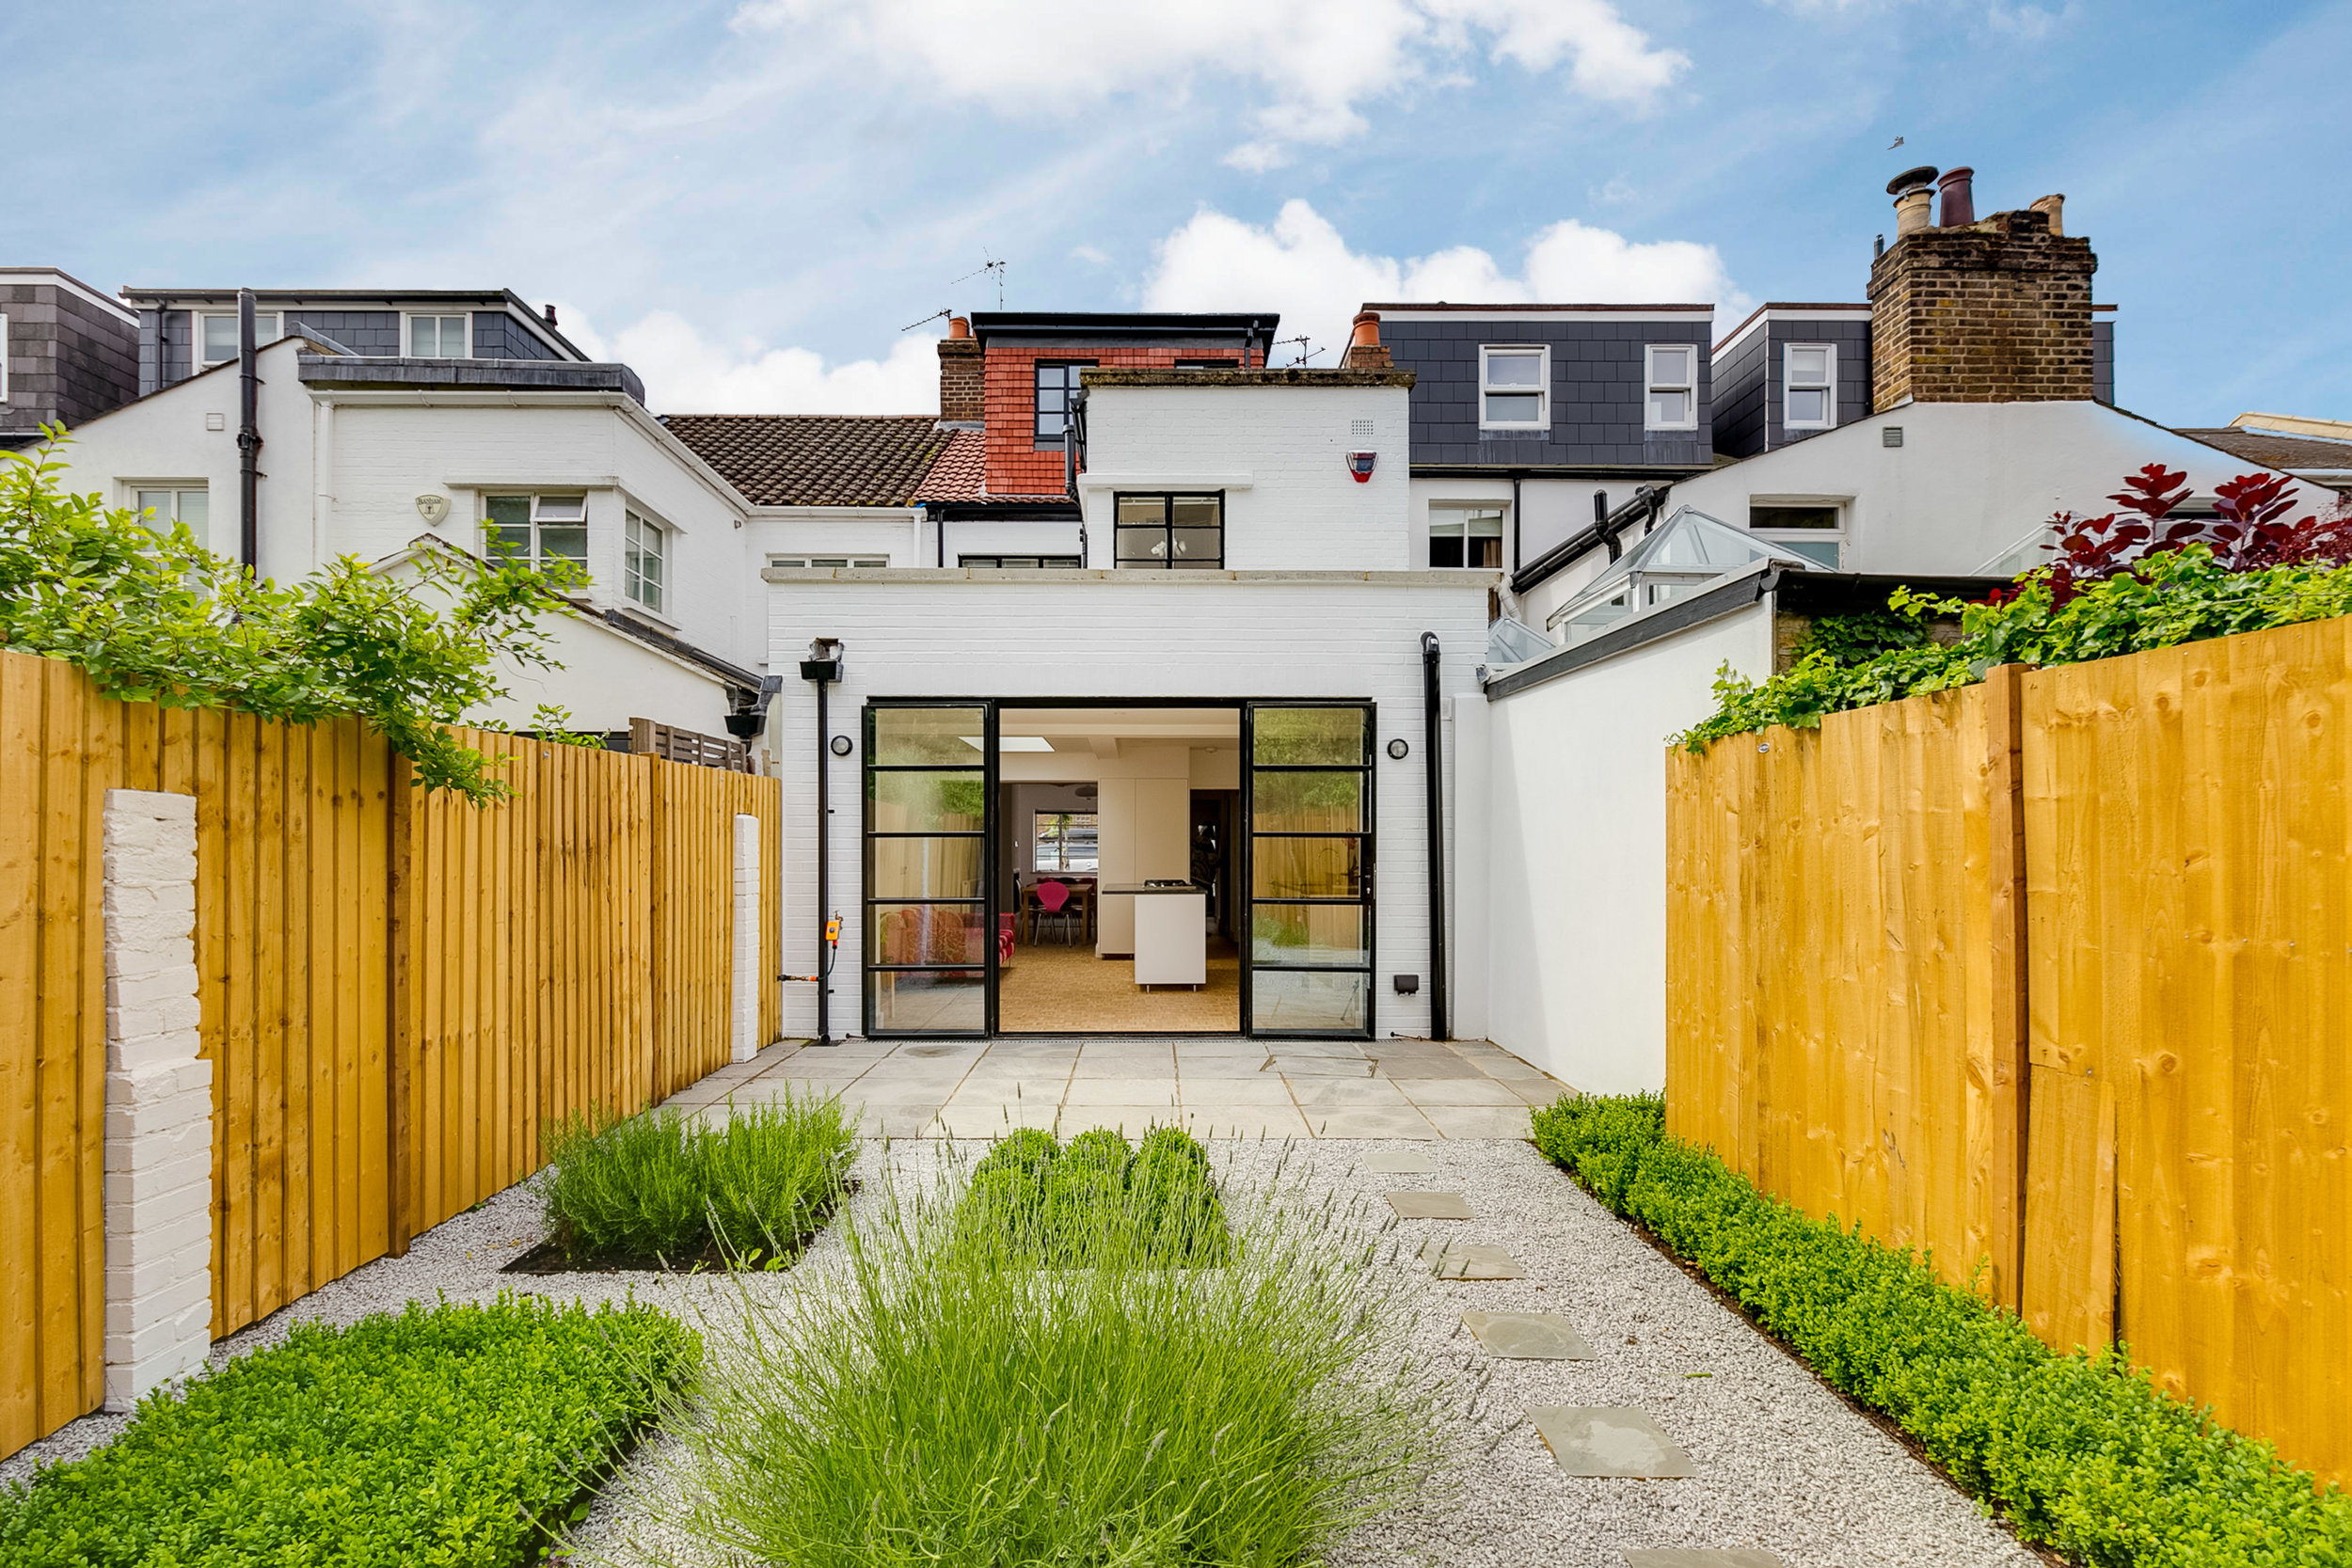 David Joseph Consulting Ltd Architechtural Design Consultancy in Forest Hill South East London 3.jpg